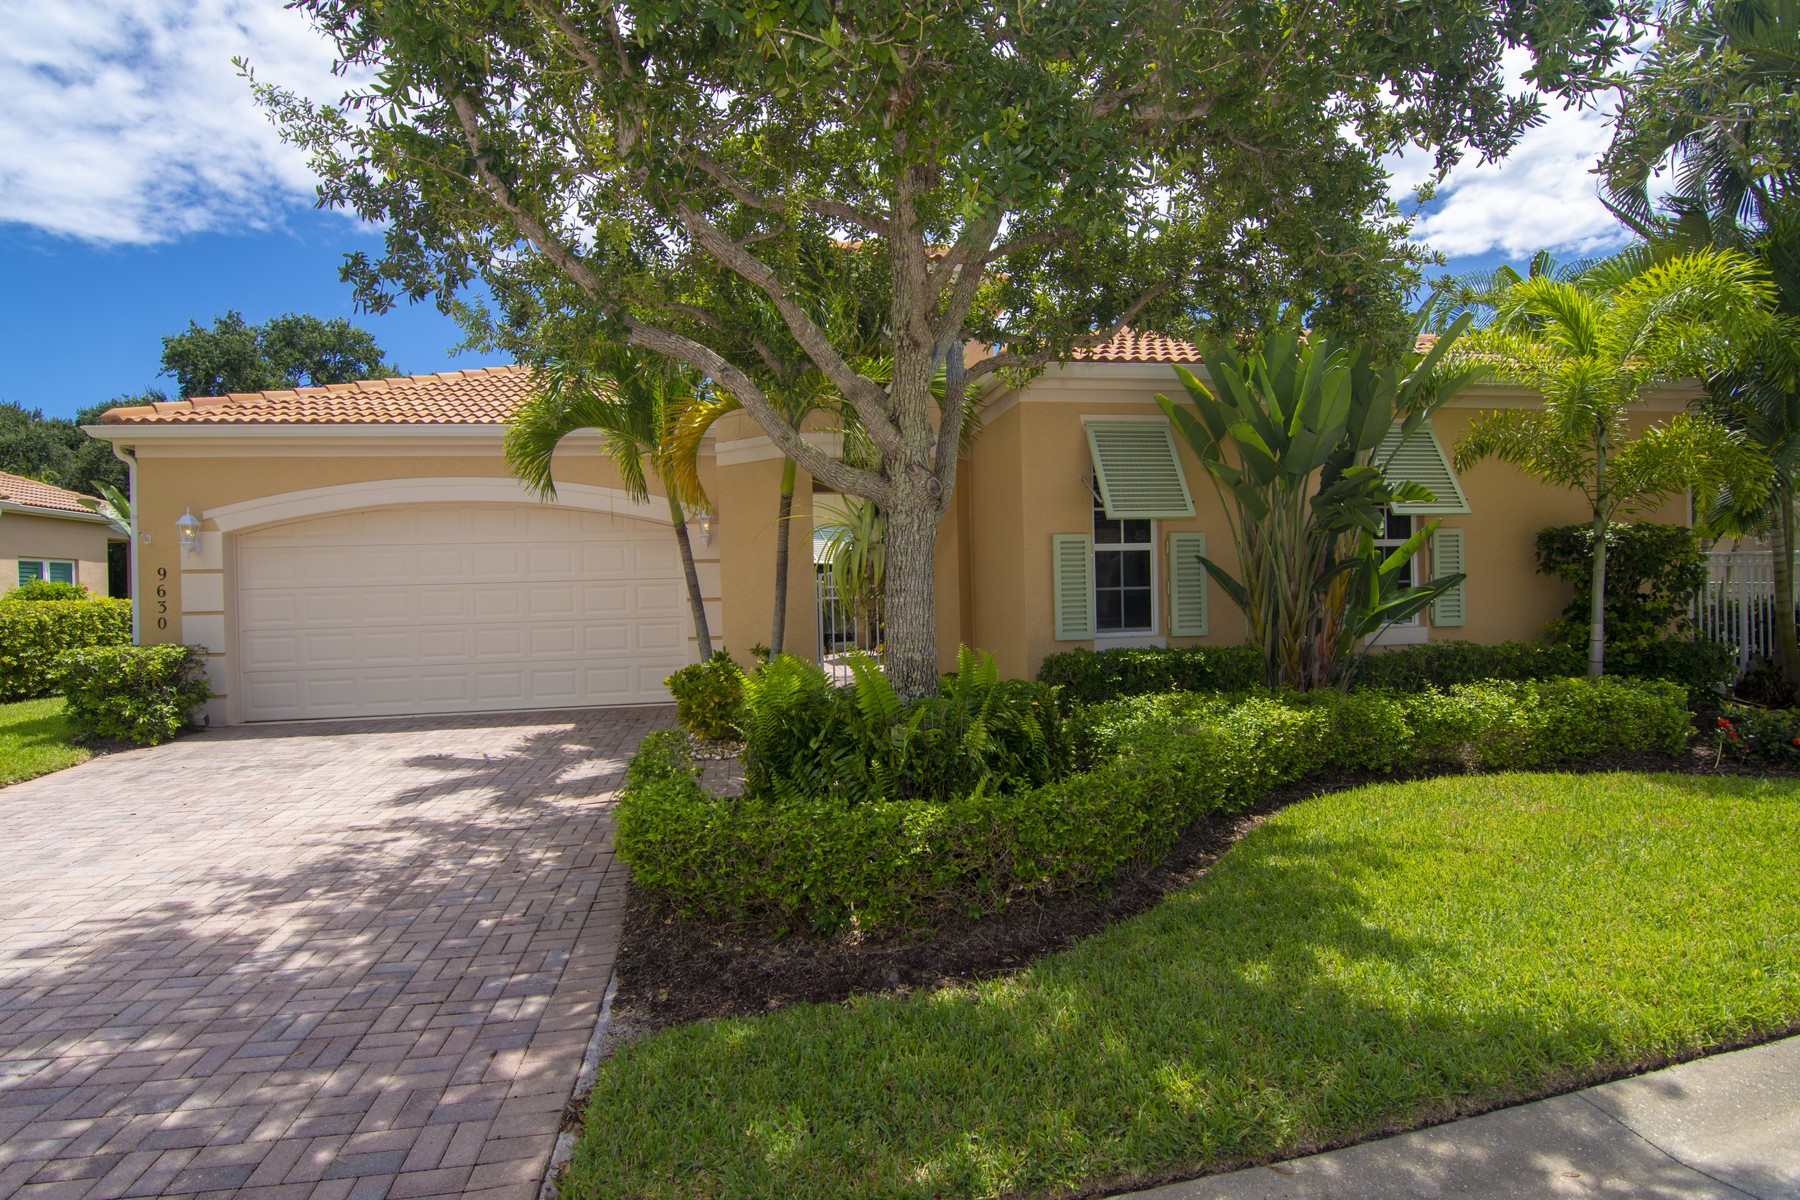 Single Family Homes のために 売買 アット Courtyard Pool Home with Guest Cabana 9630 E Maiden Court Vero Beach, フロリダ 32963 アメリカ